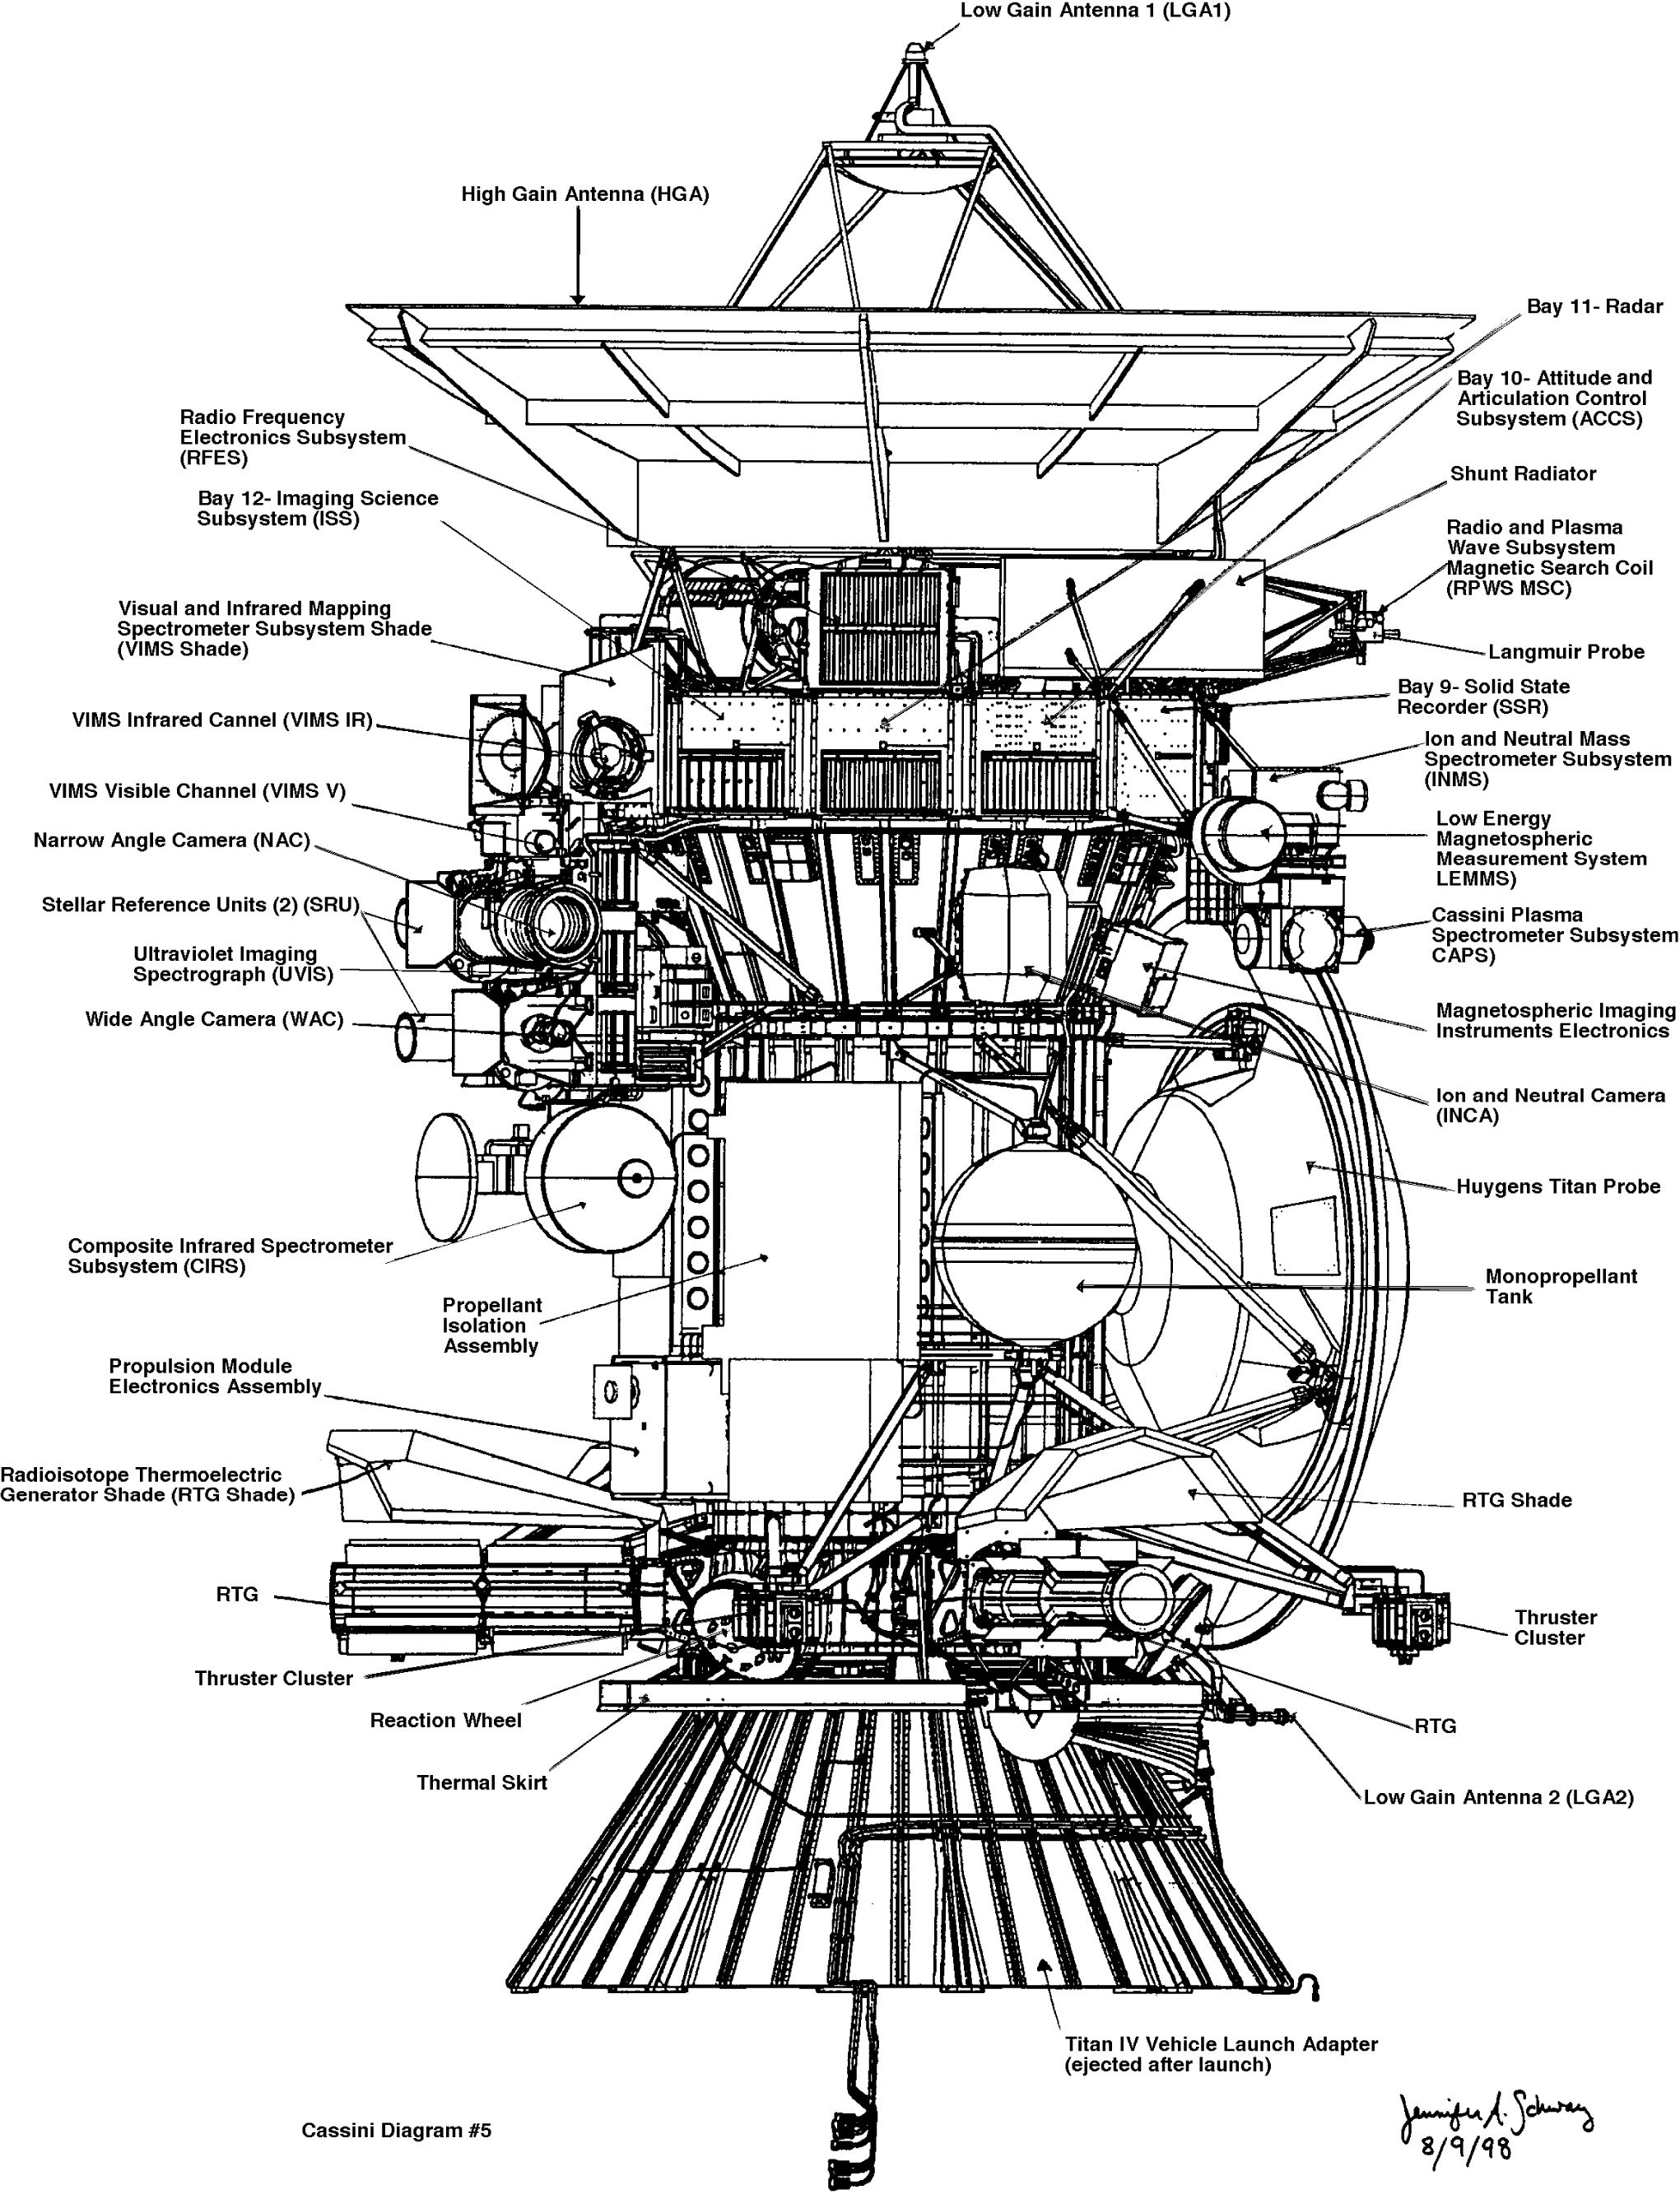 cassini diagram no  5